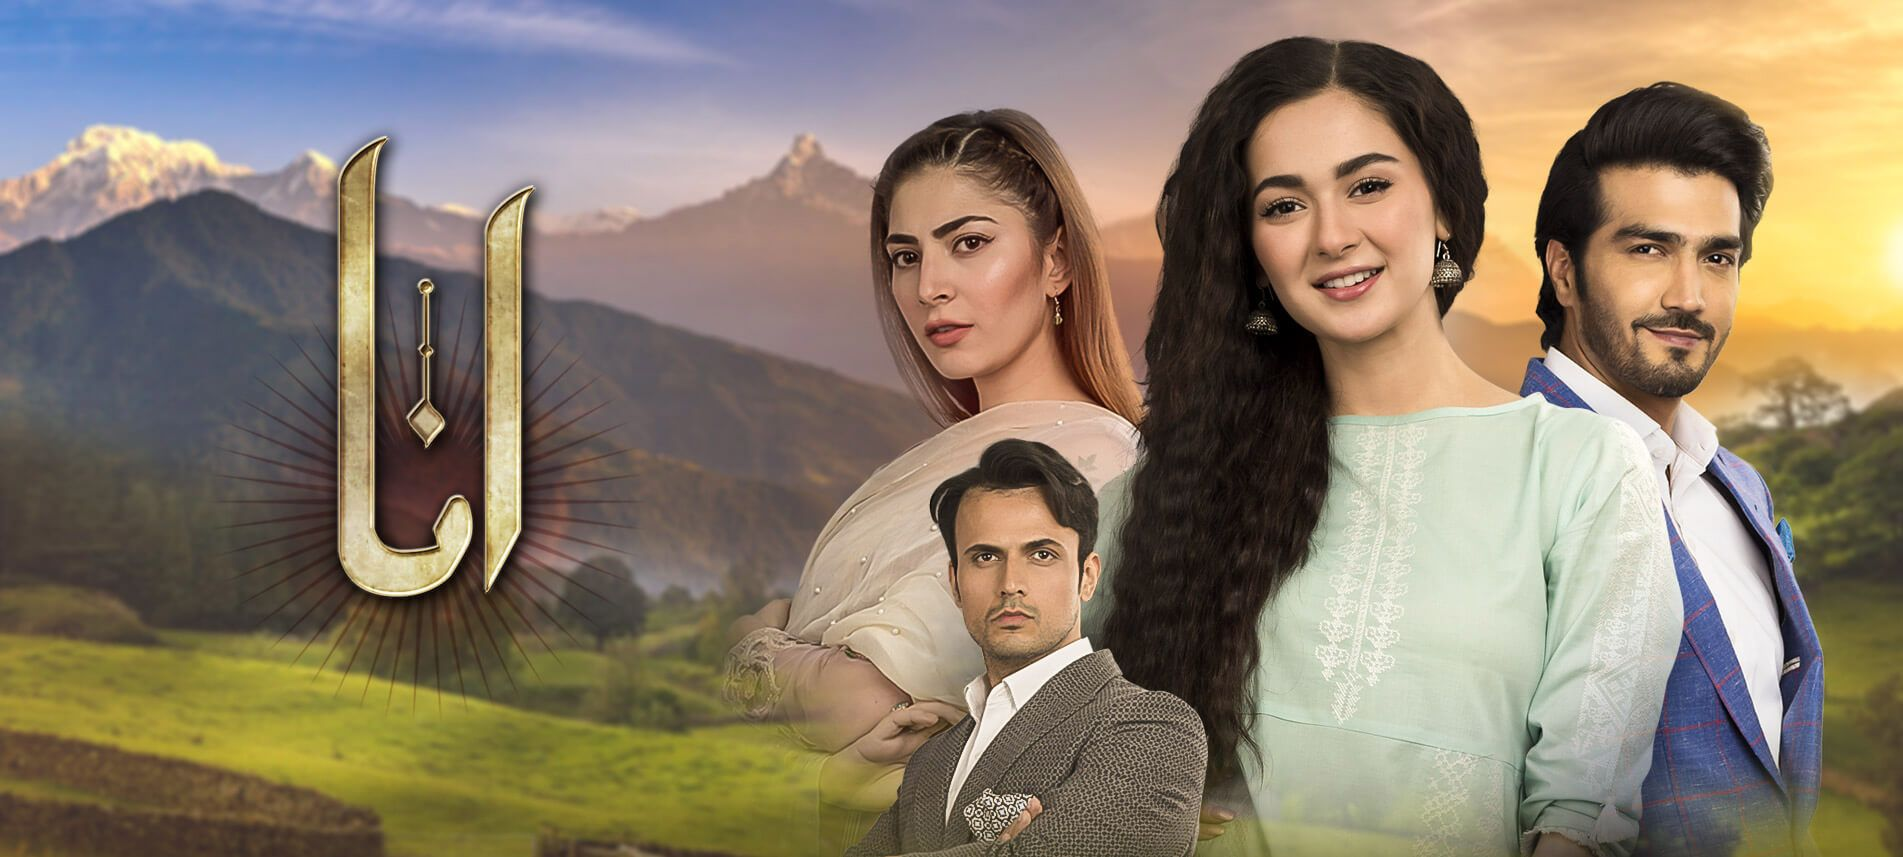 ce308275536ee108d84def49de88771c - Best Pakistani dramas in 2019 that you should watch